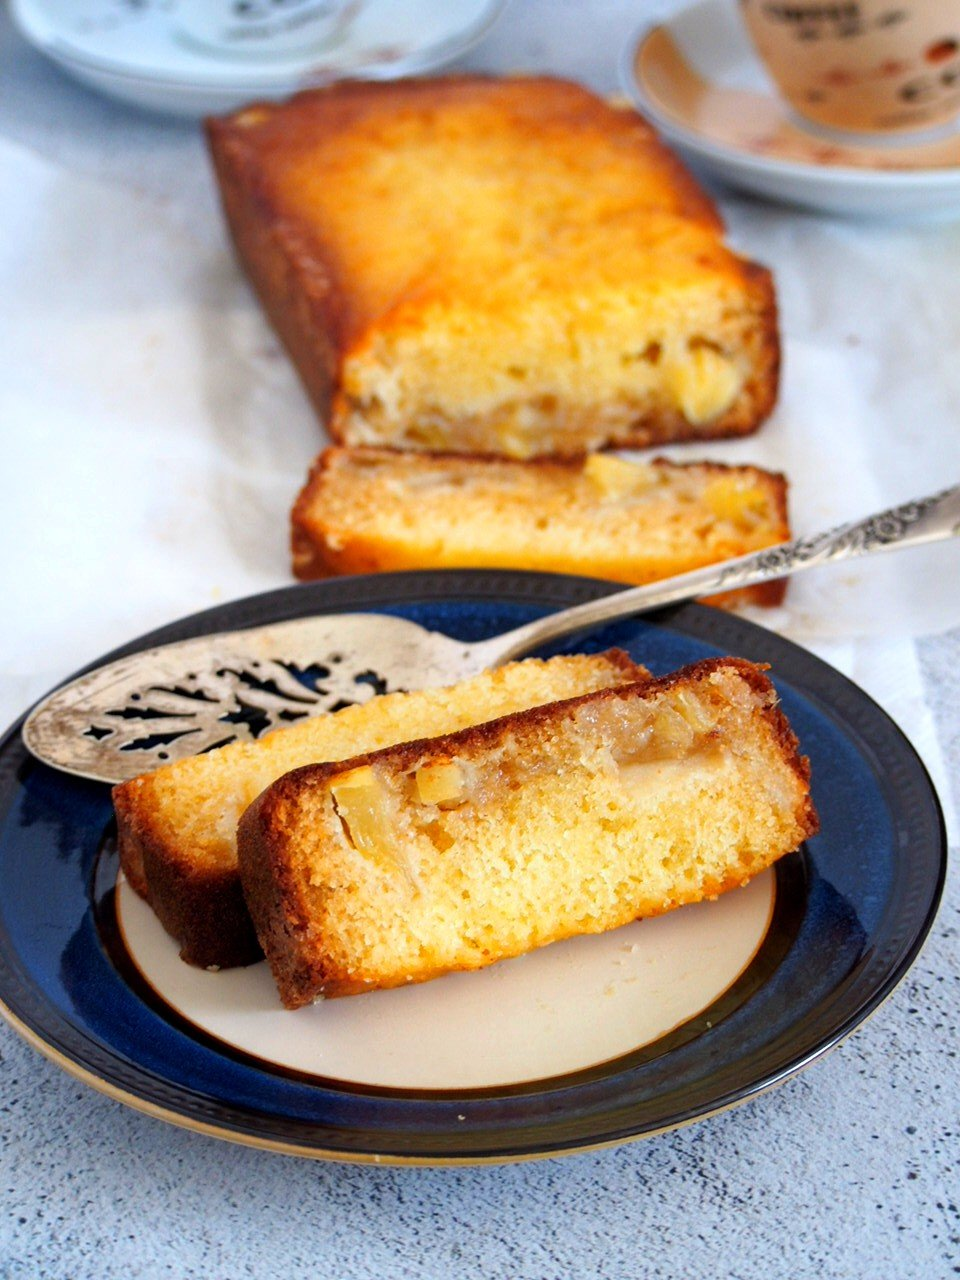 Two slices of Pineapple Loaf cake on a plate.